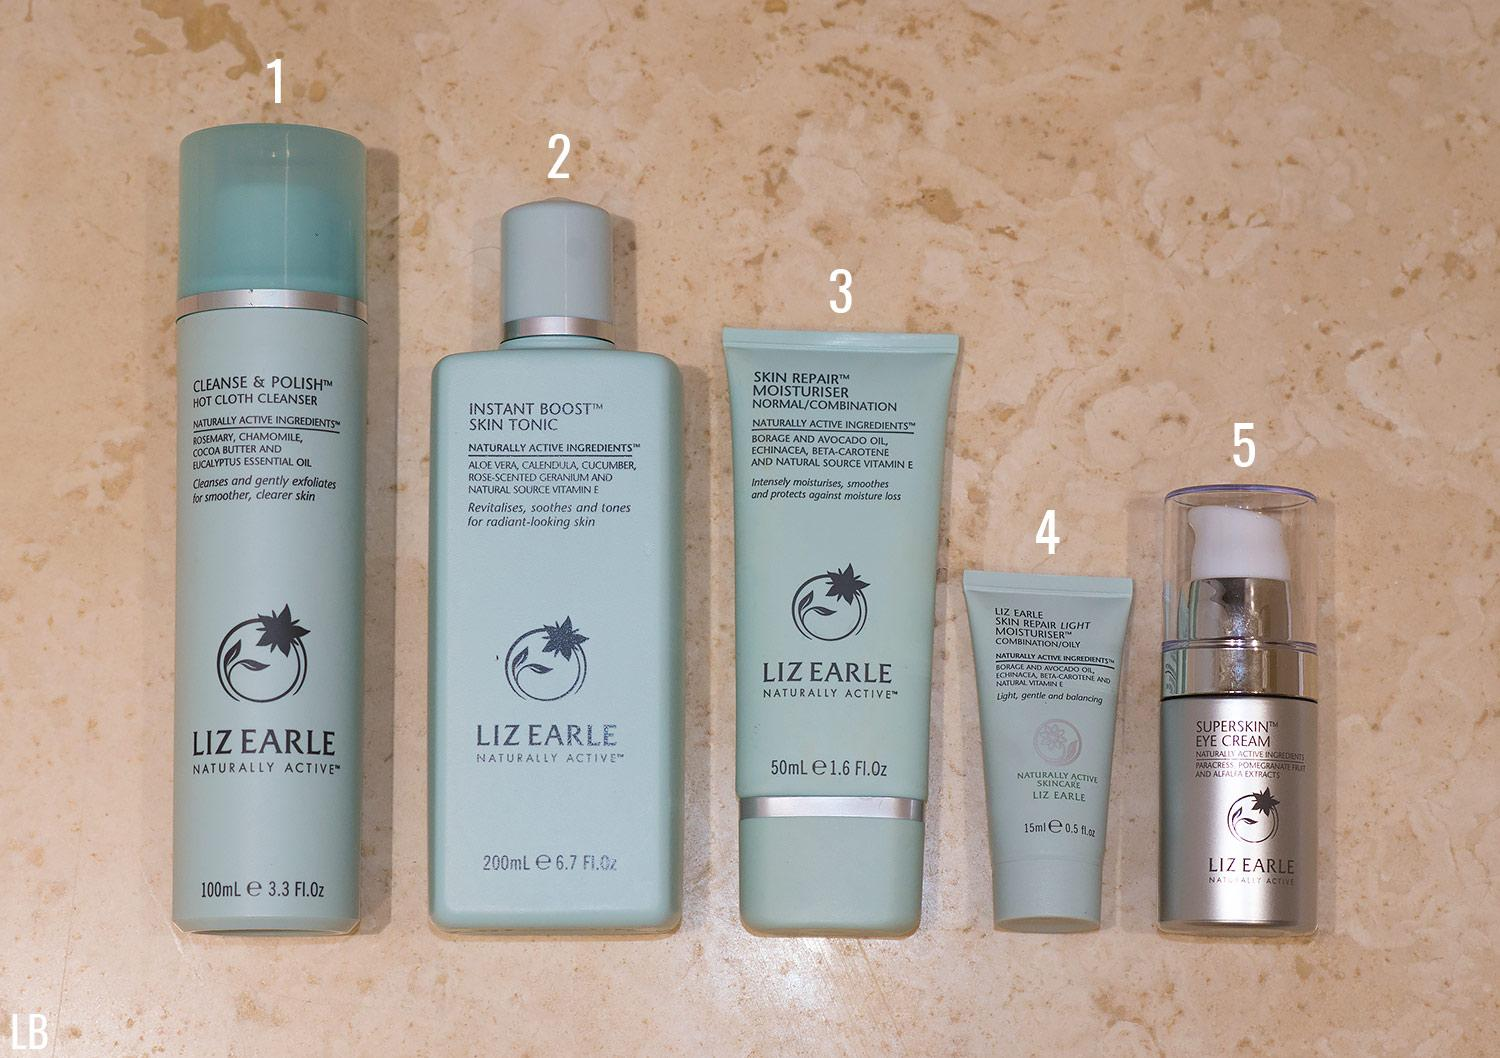 Liz-Earle-Face-Skin-Care-Set